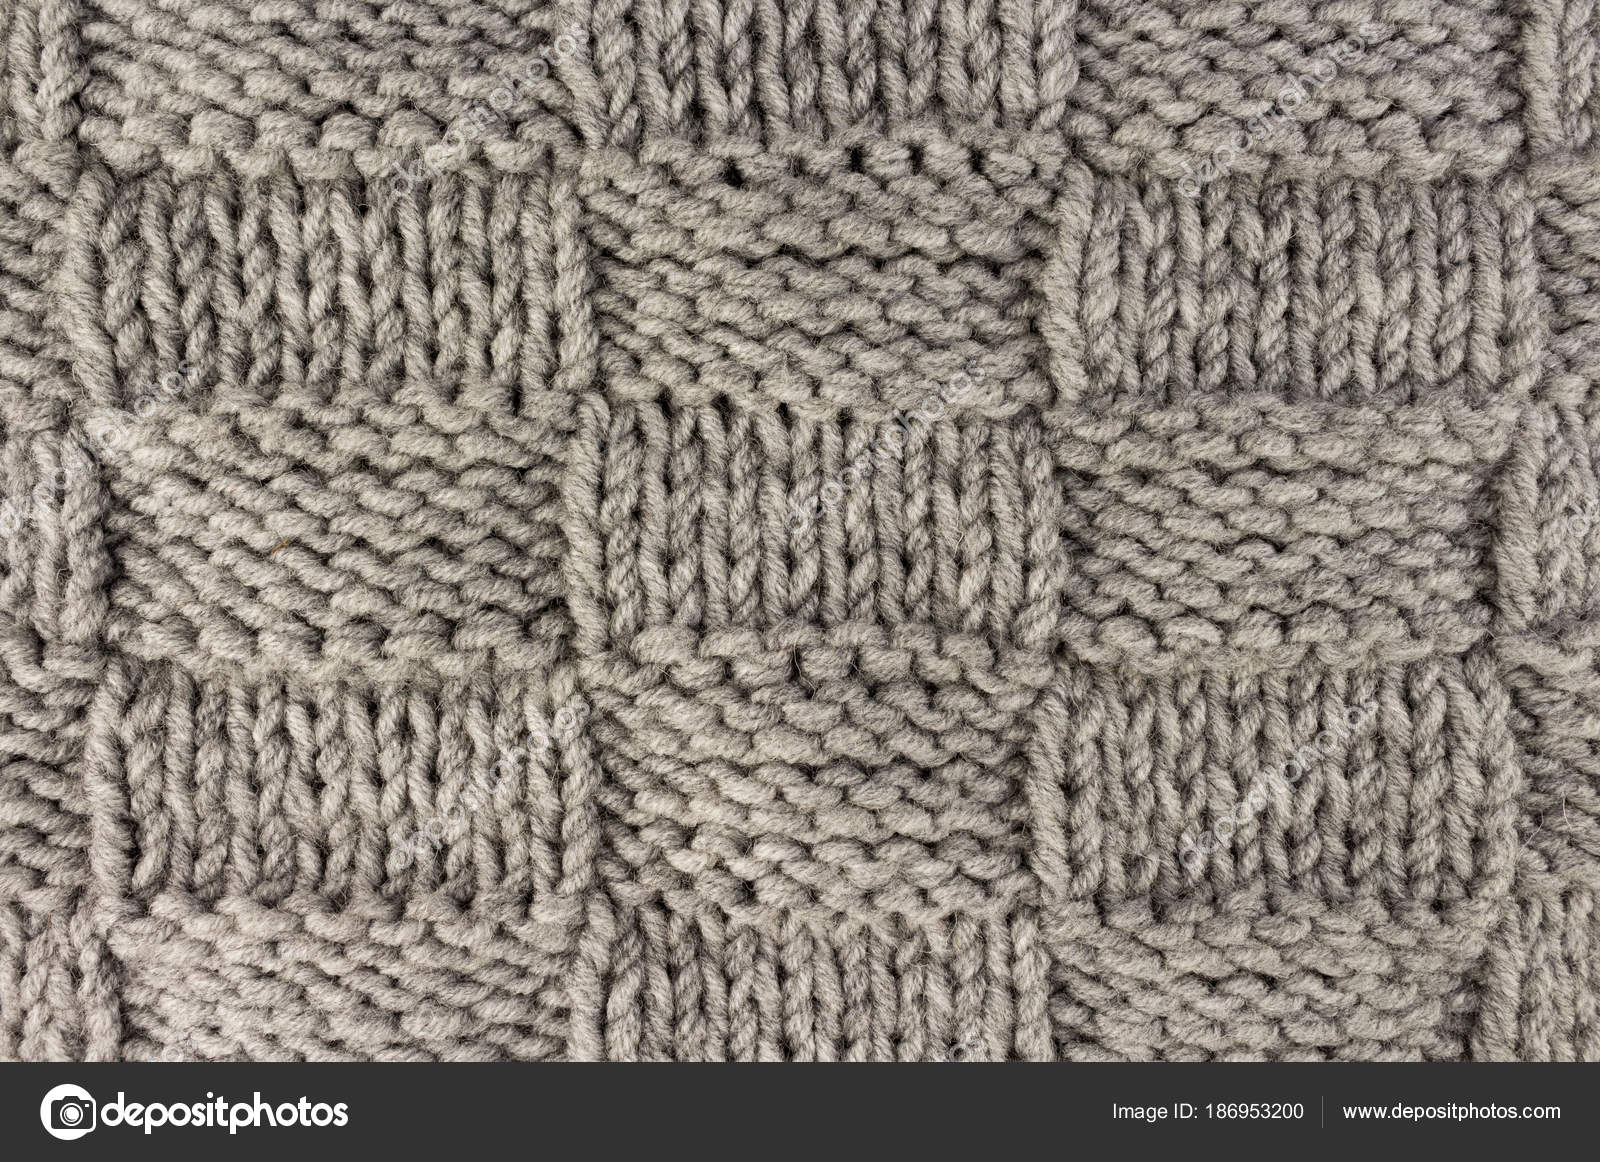 Knitted Pattern Knitting Gray Knit Fabric Texture Background Or Knitted Pattern